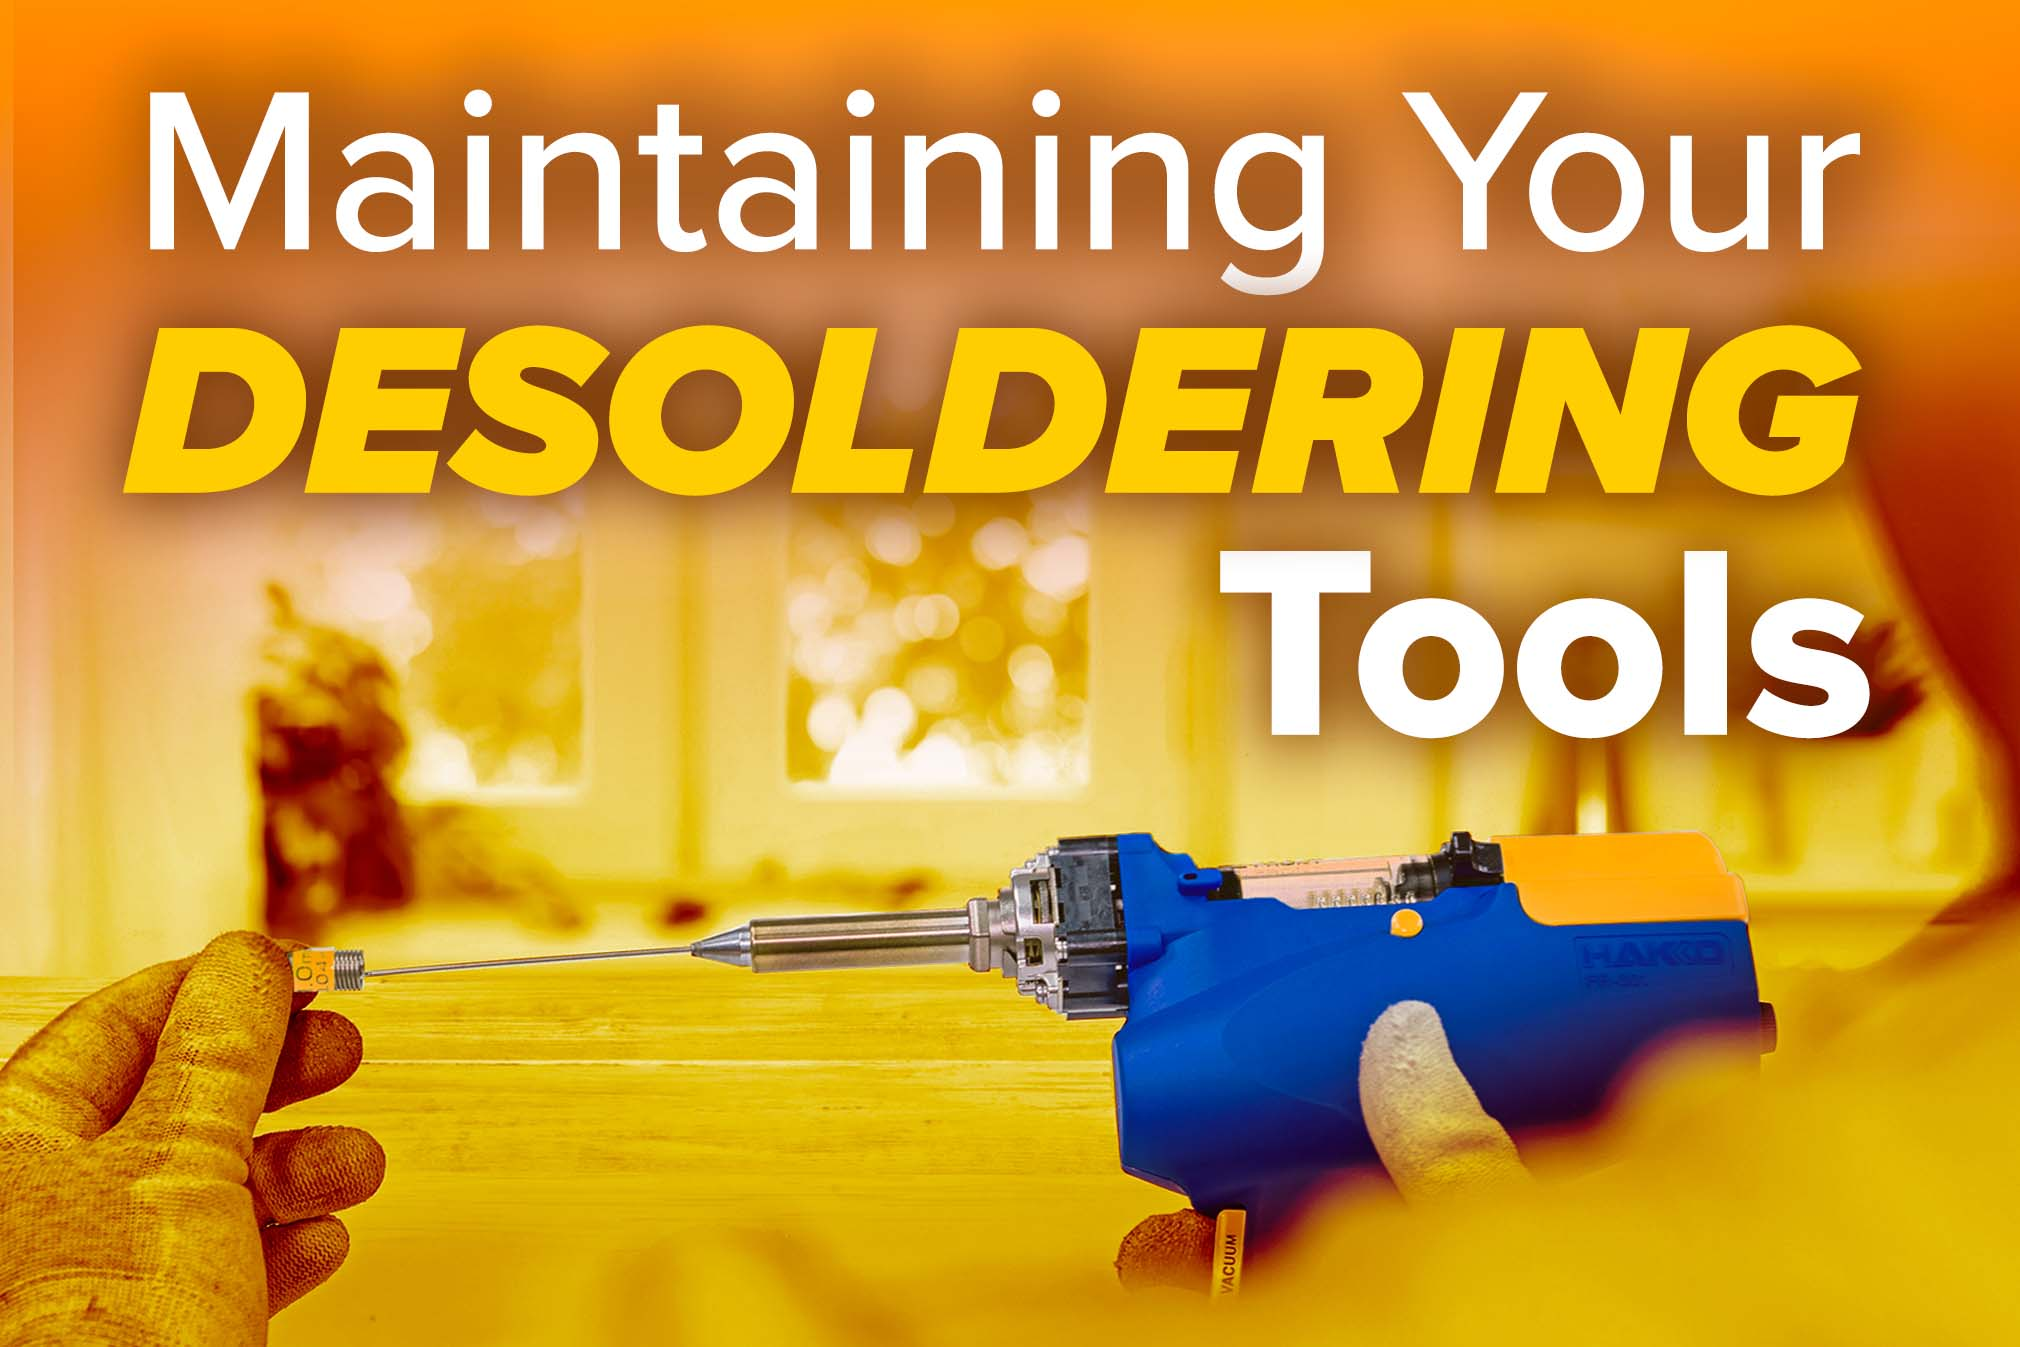 Maintaining_your_desoldering_tools